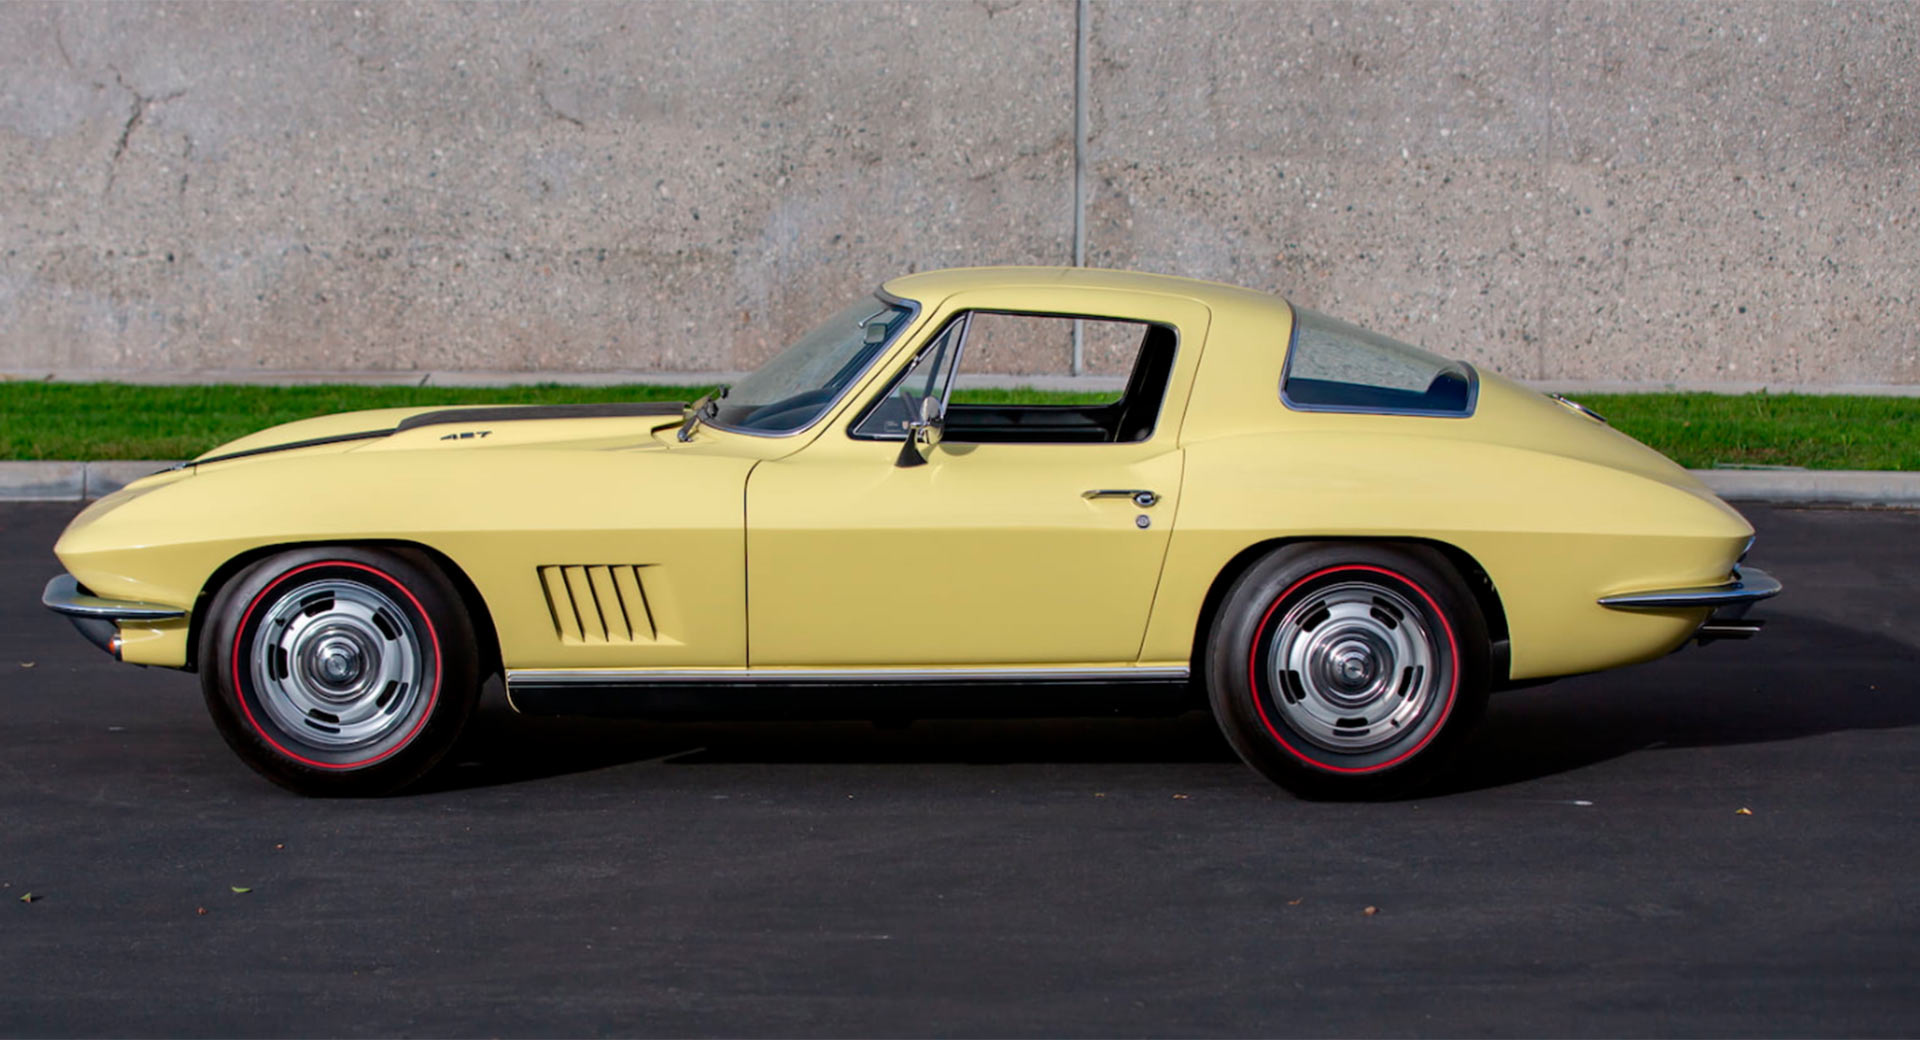 Chevrolet-Corvette-L88-auction-2